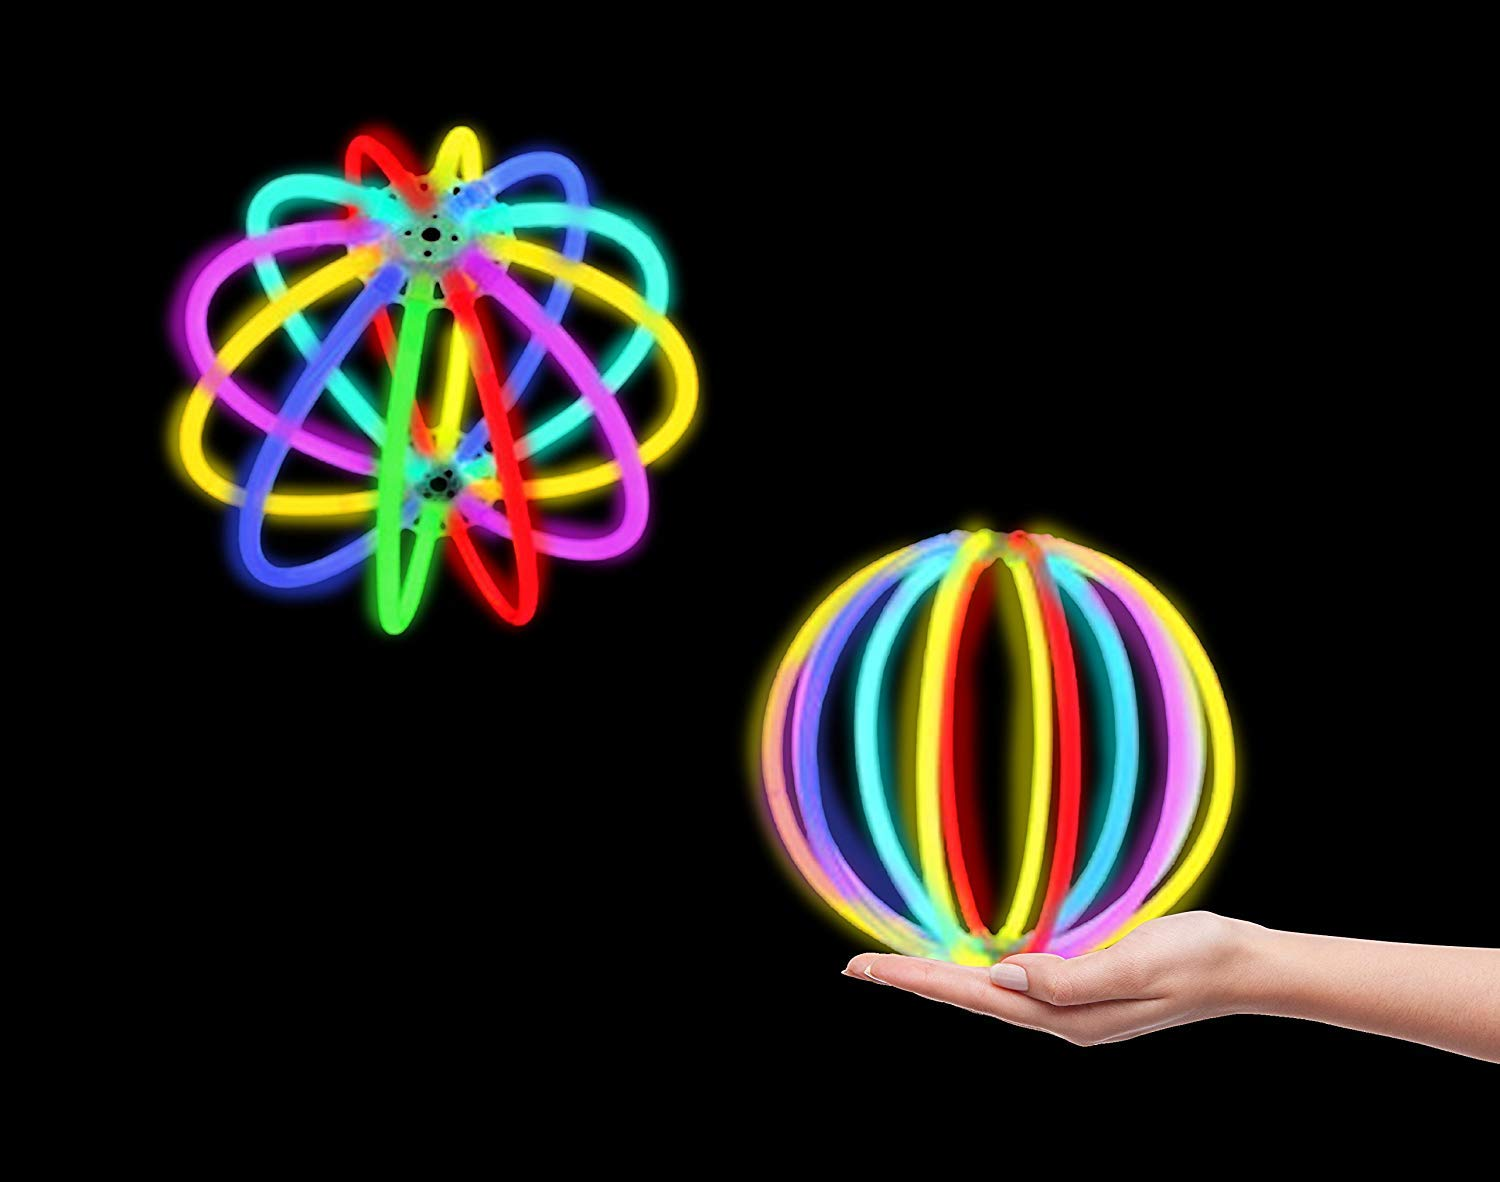 Ball and Glowing Ear Headband Fun Central BC905 Glow Party Favors Glow Cap Halloween Party Supplies Hora Loca Party Supplies 100 Pcs 8 Inches Glow Stick Party Pack Eyeglasses